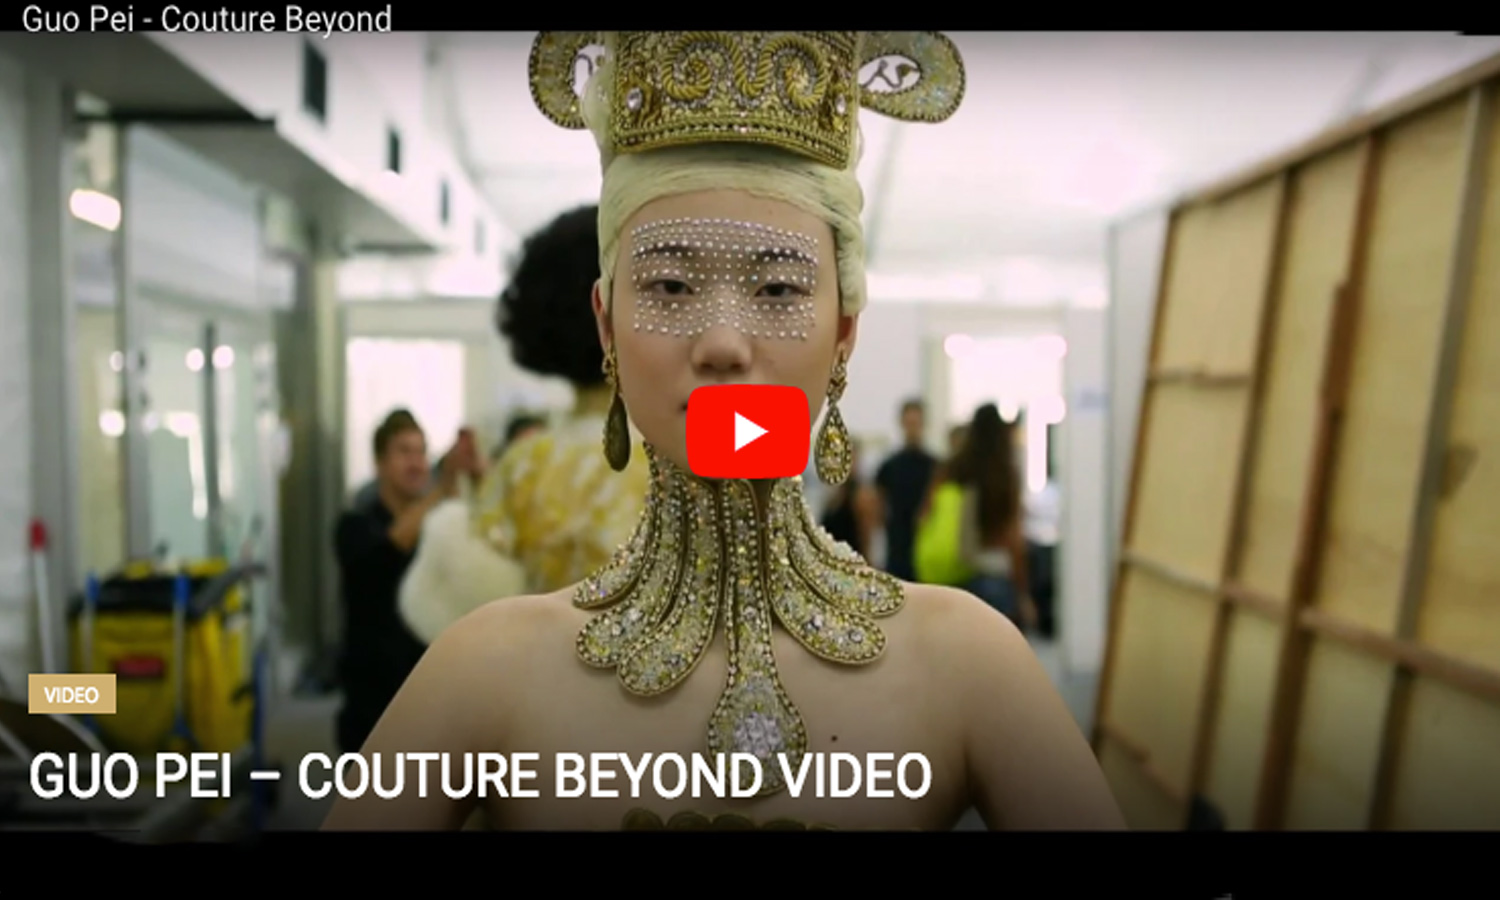 AFRICAN FASHION STYLE MAGAZINE- GUO PEI – COUTURE BEYOND VIDEO - Media Partner DN MAG, DN AFRICA -STUDIO 24 NIGERIA - STUDIO 24 INTERNATIONAL - DN MAG